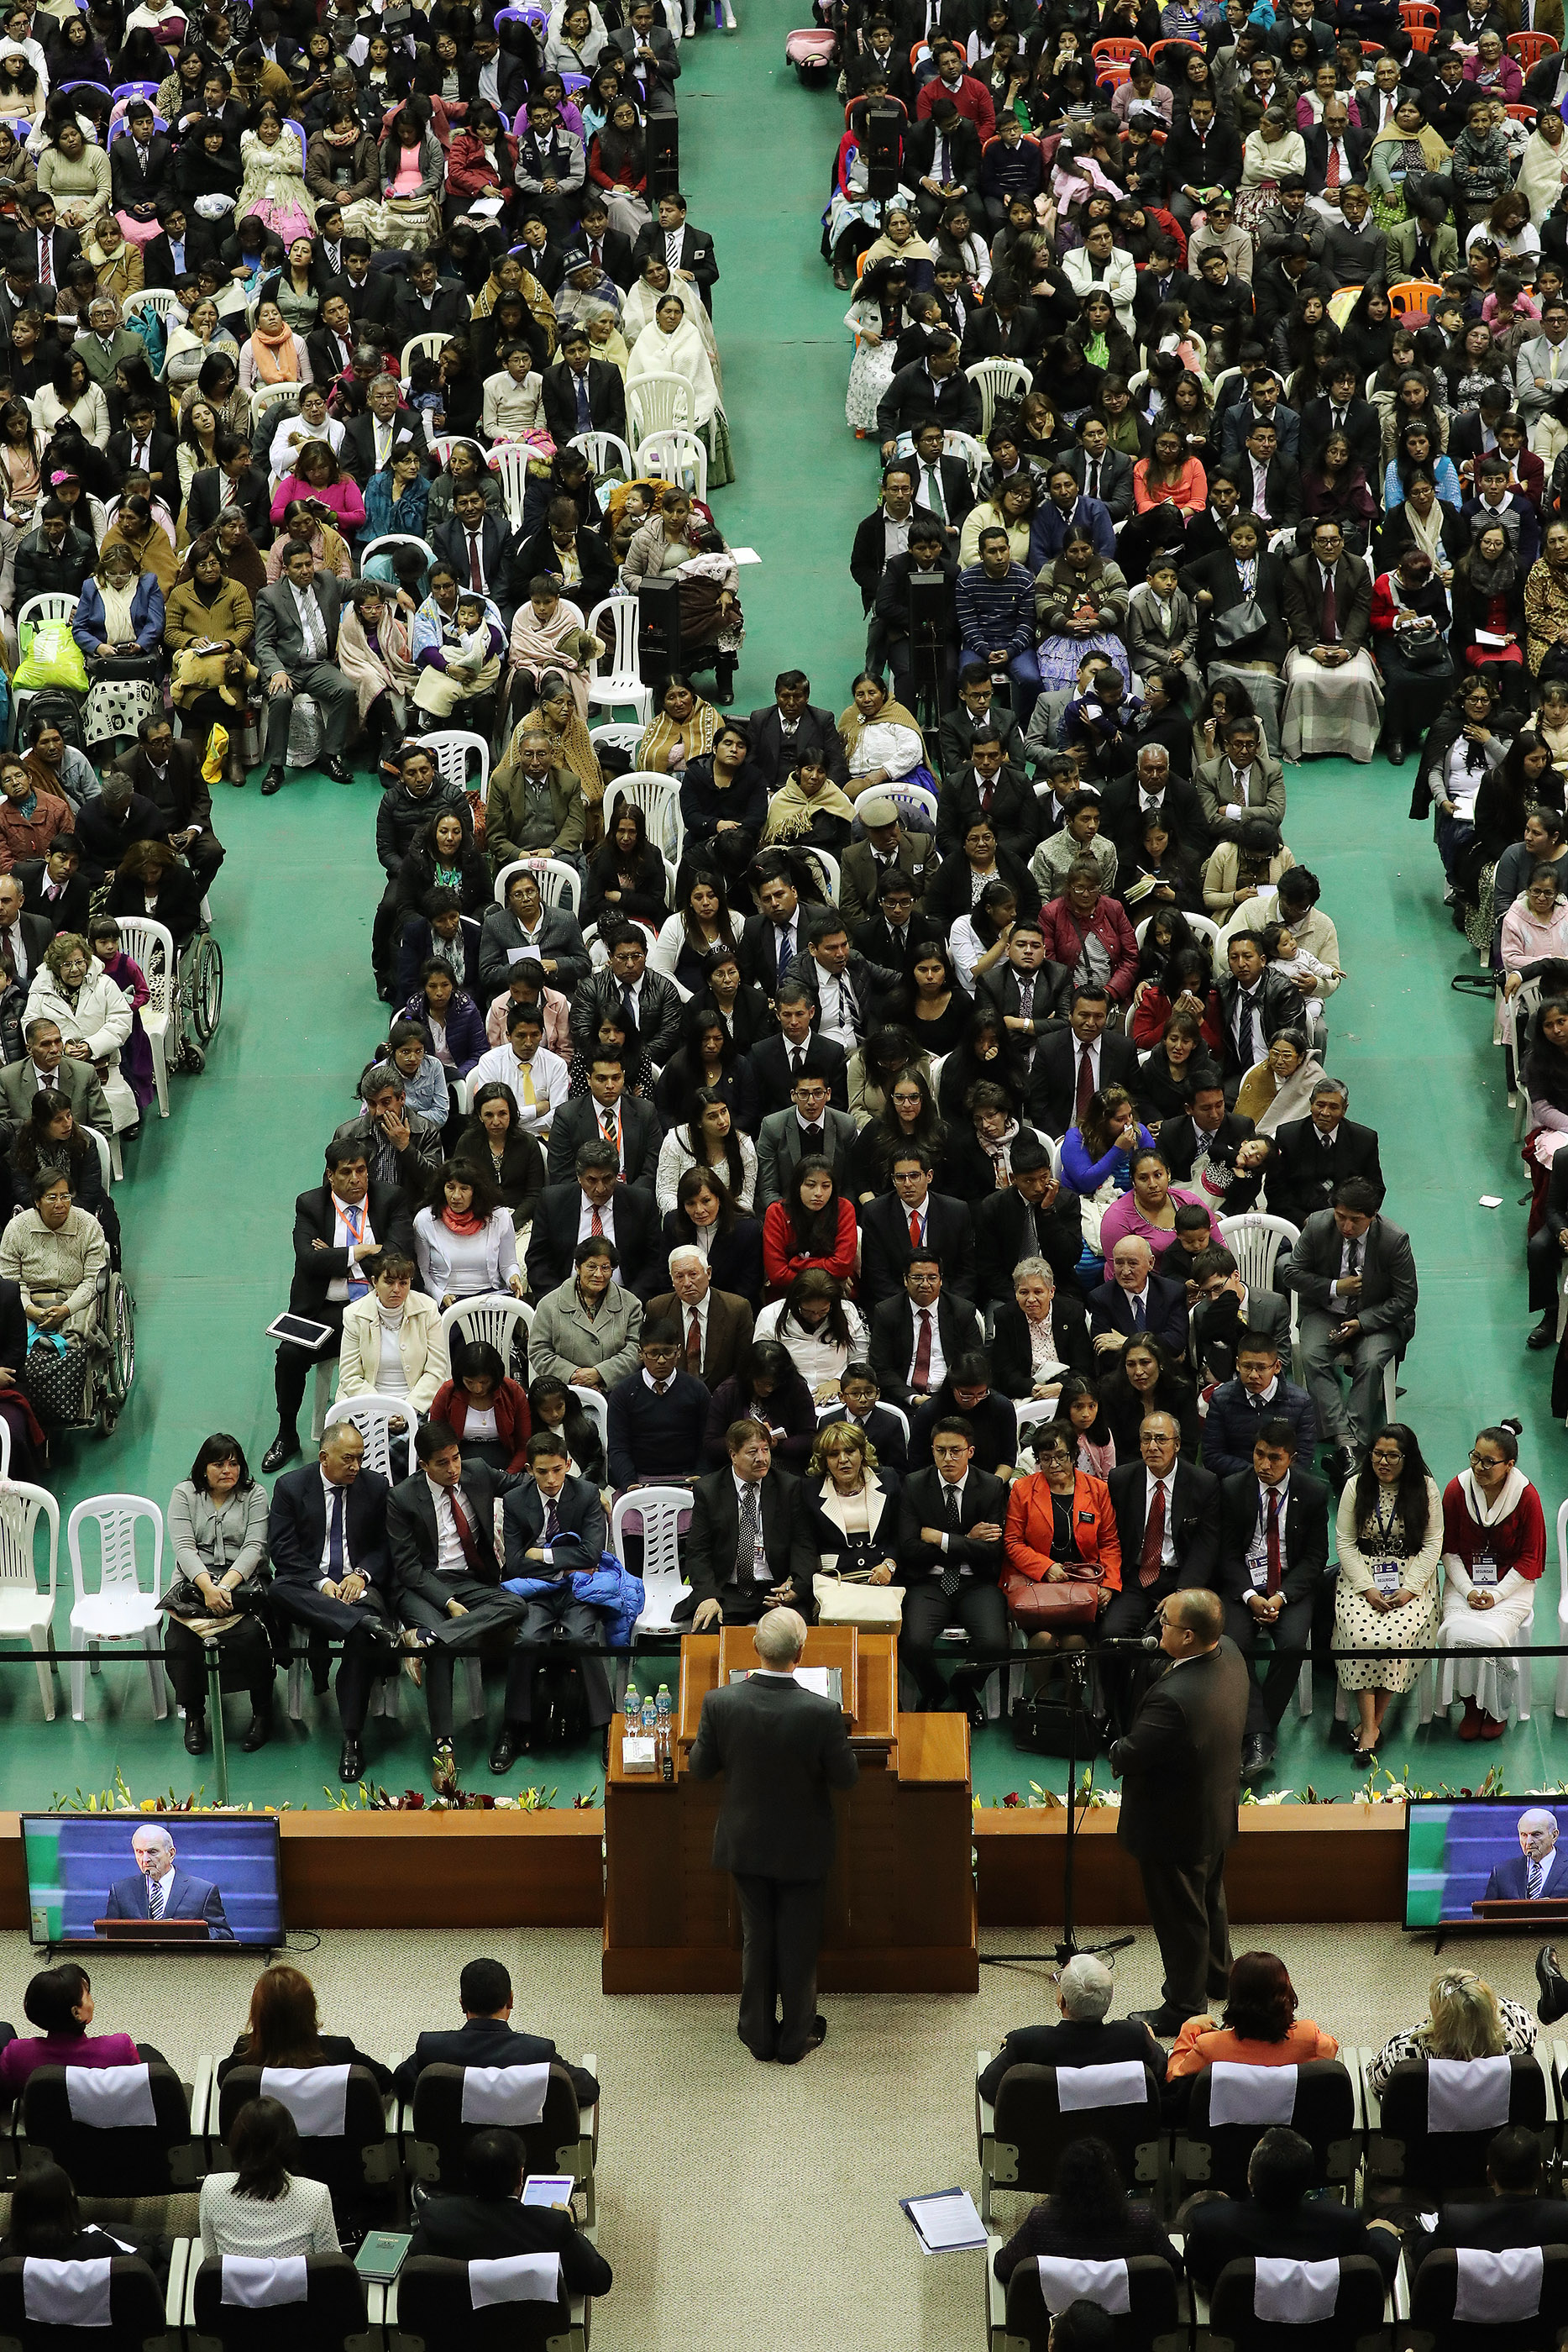 President Russell M. Nelson of The Church of Jesus Christ of Latter-day Saints speaks in La Paz, Bolivia on Oct. 21, 2018.